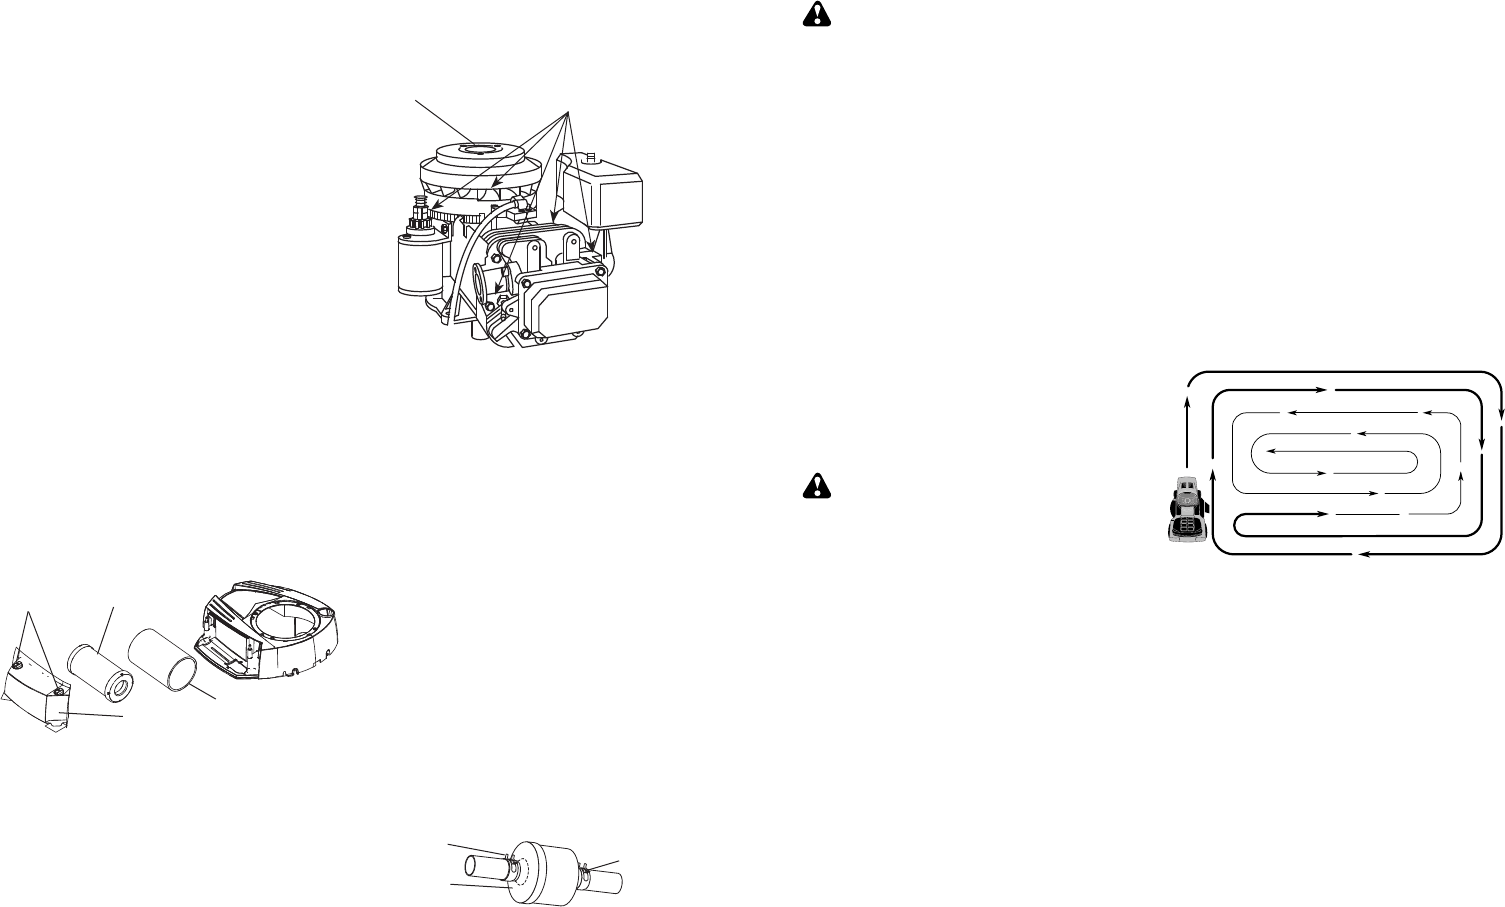 Page 15 of Craftsman Lawn Mower 917.28851 User Guide